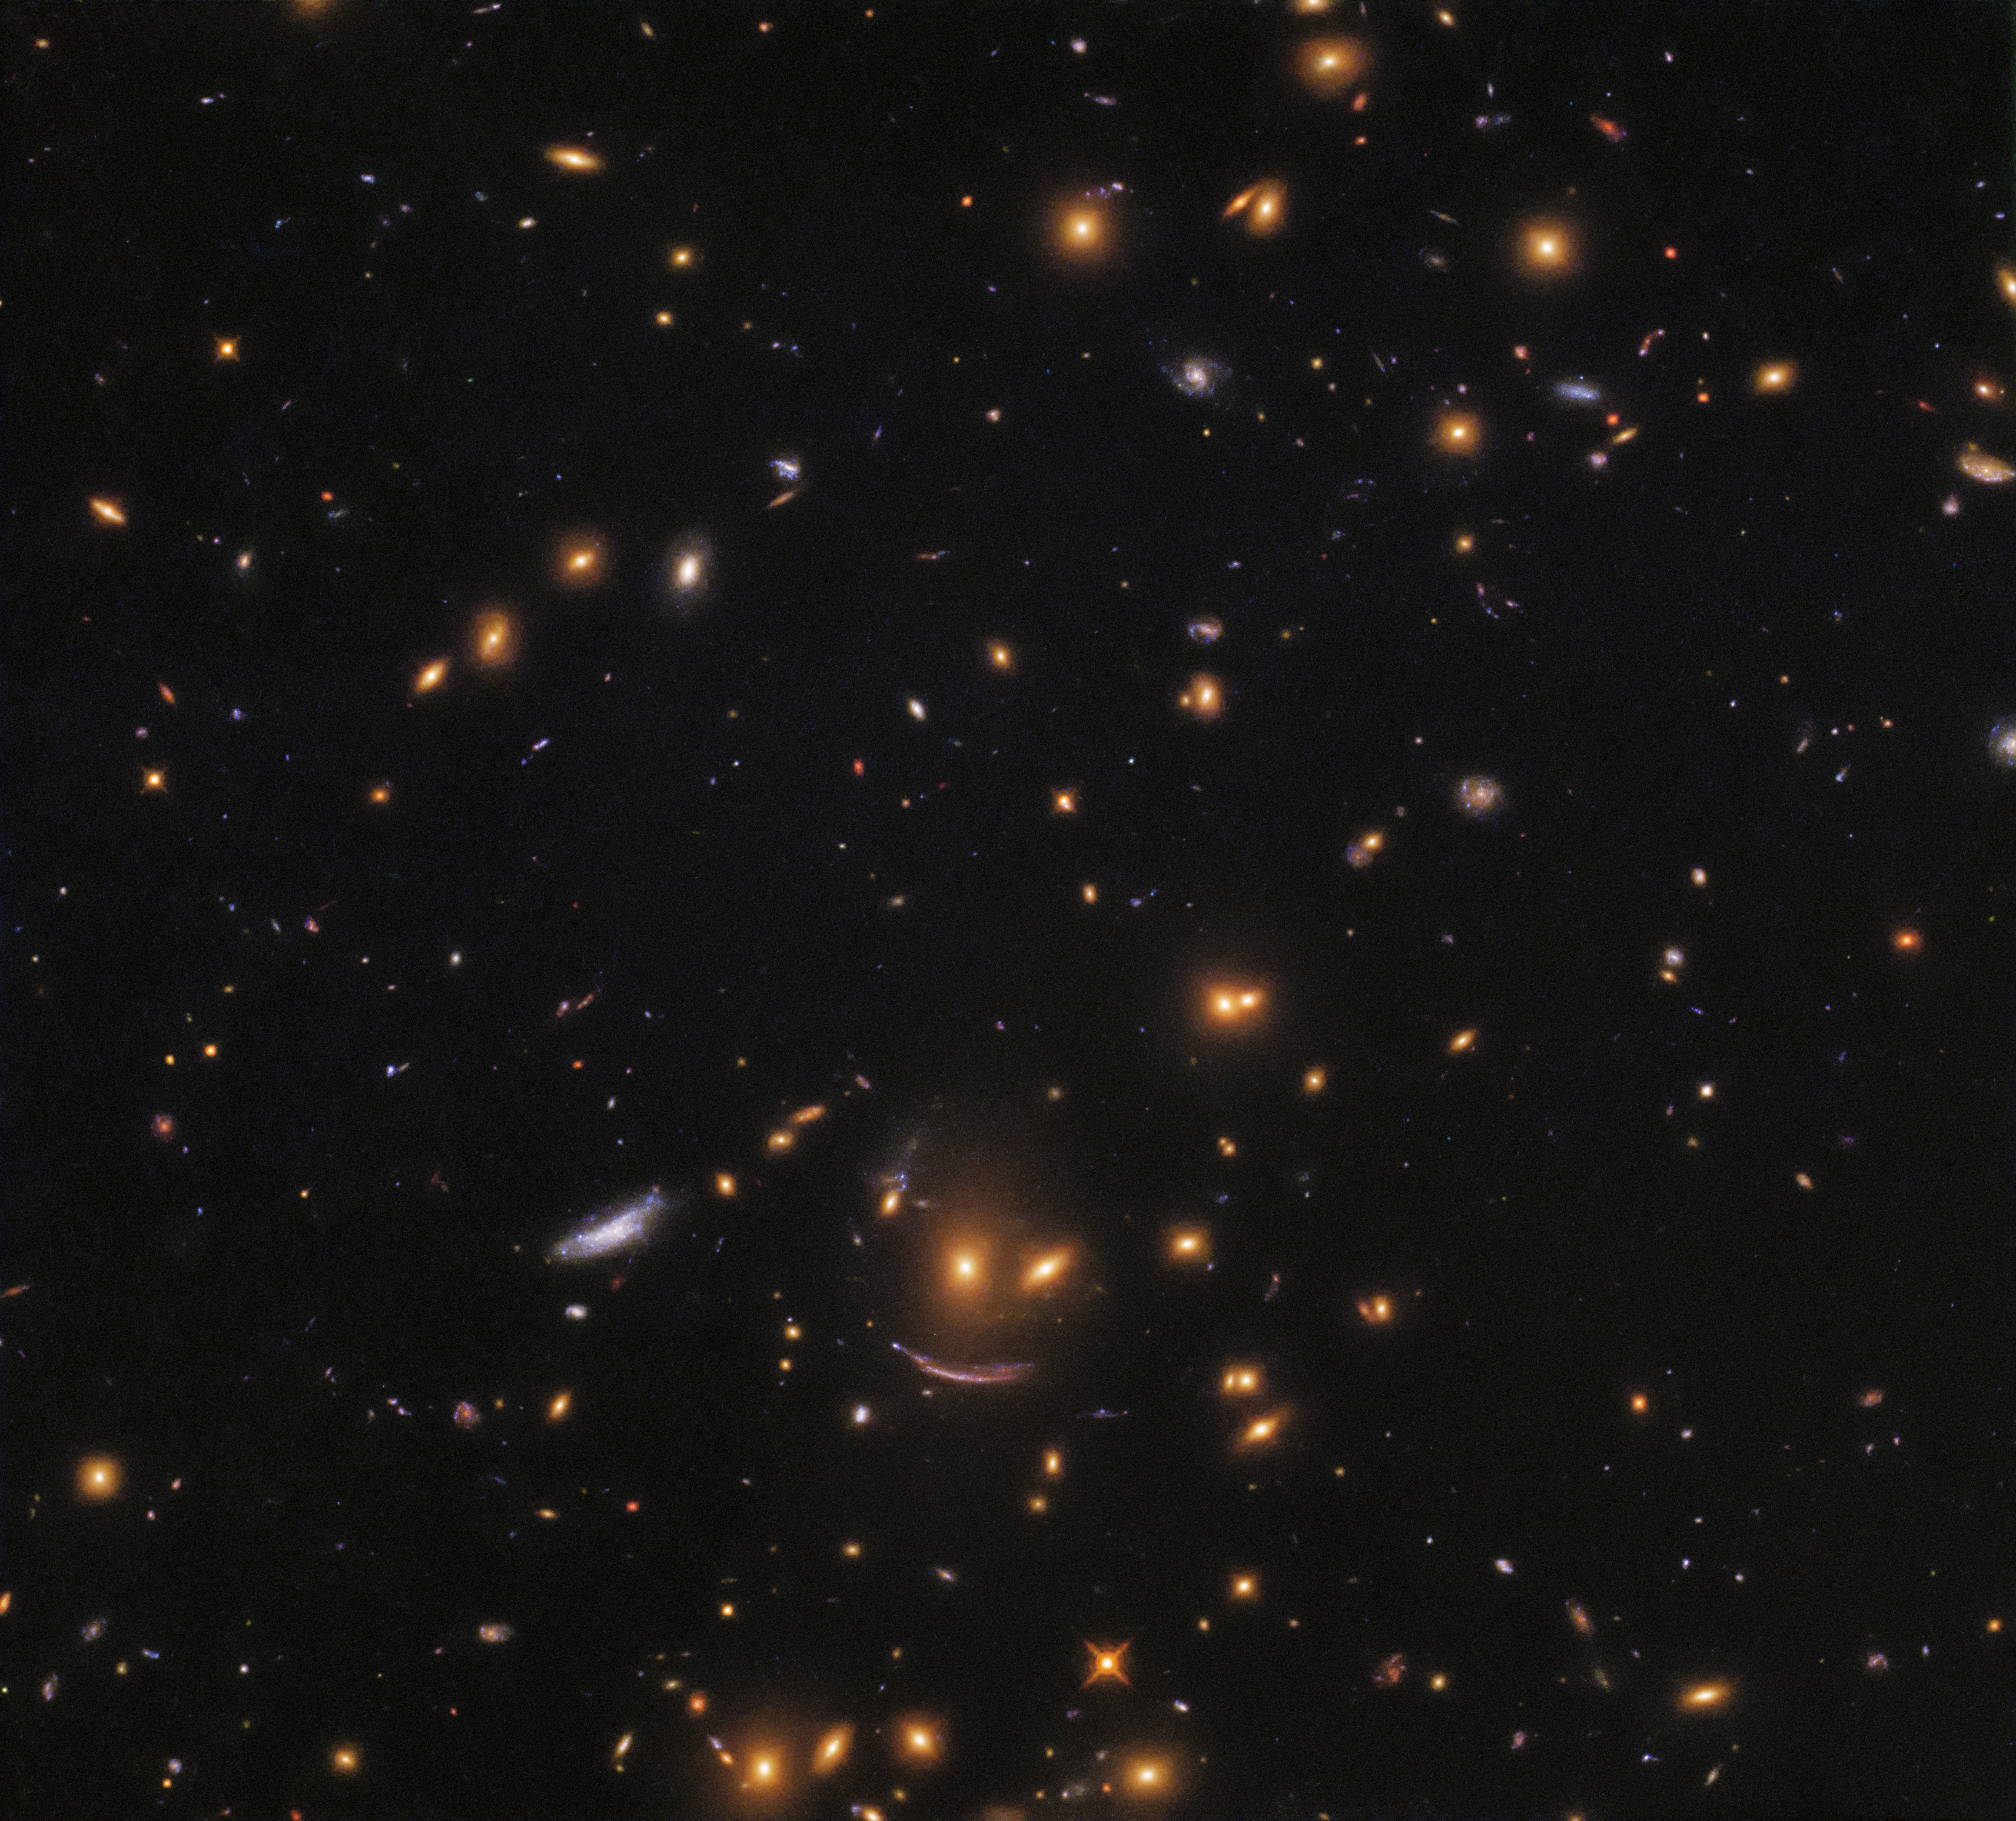 Collection of galaxies including a trio that form in the shape of a classic cartoon smiley face-- two dots for eyes and a curved line for a mouth.